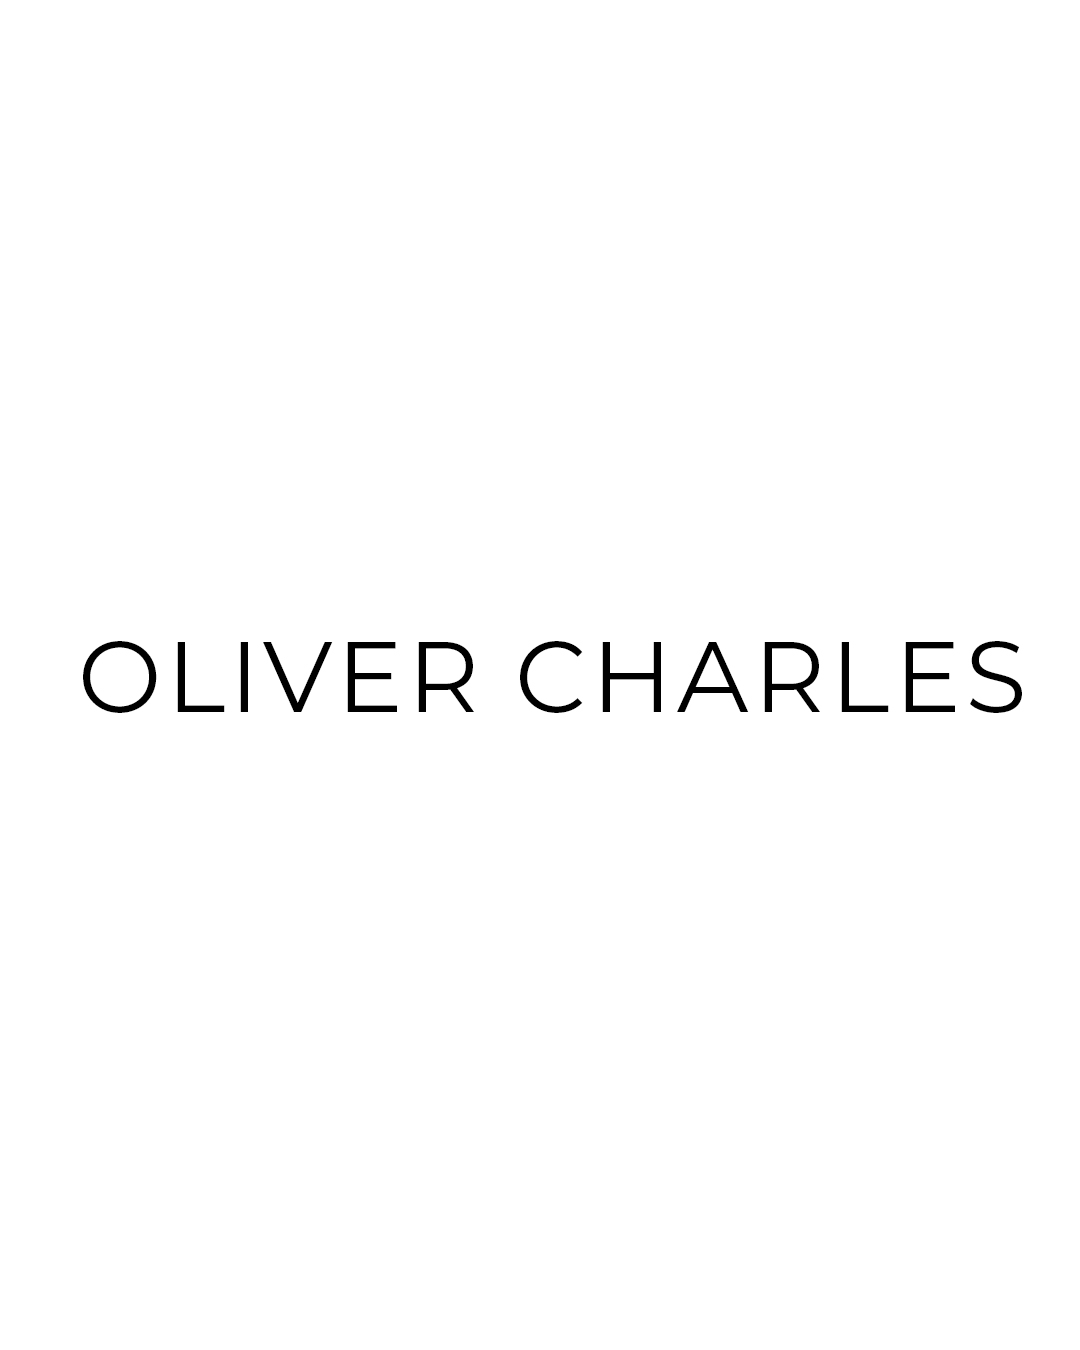 Oliver Charles icon